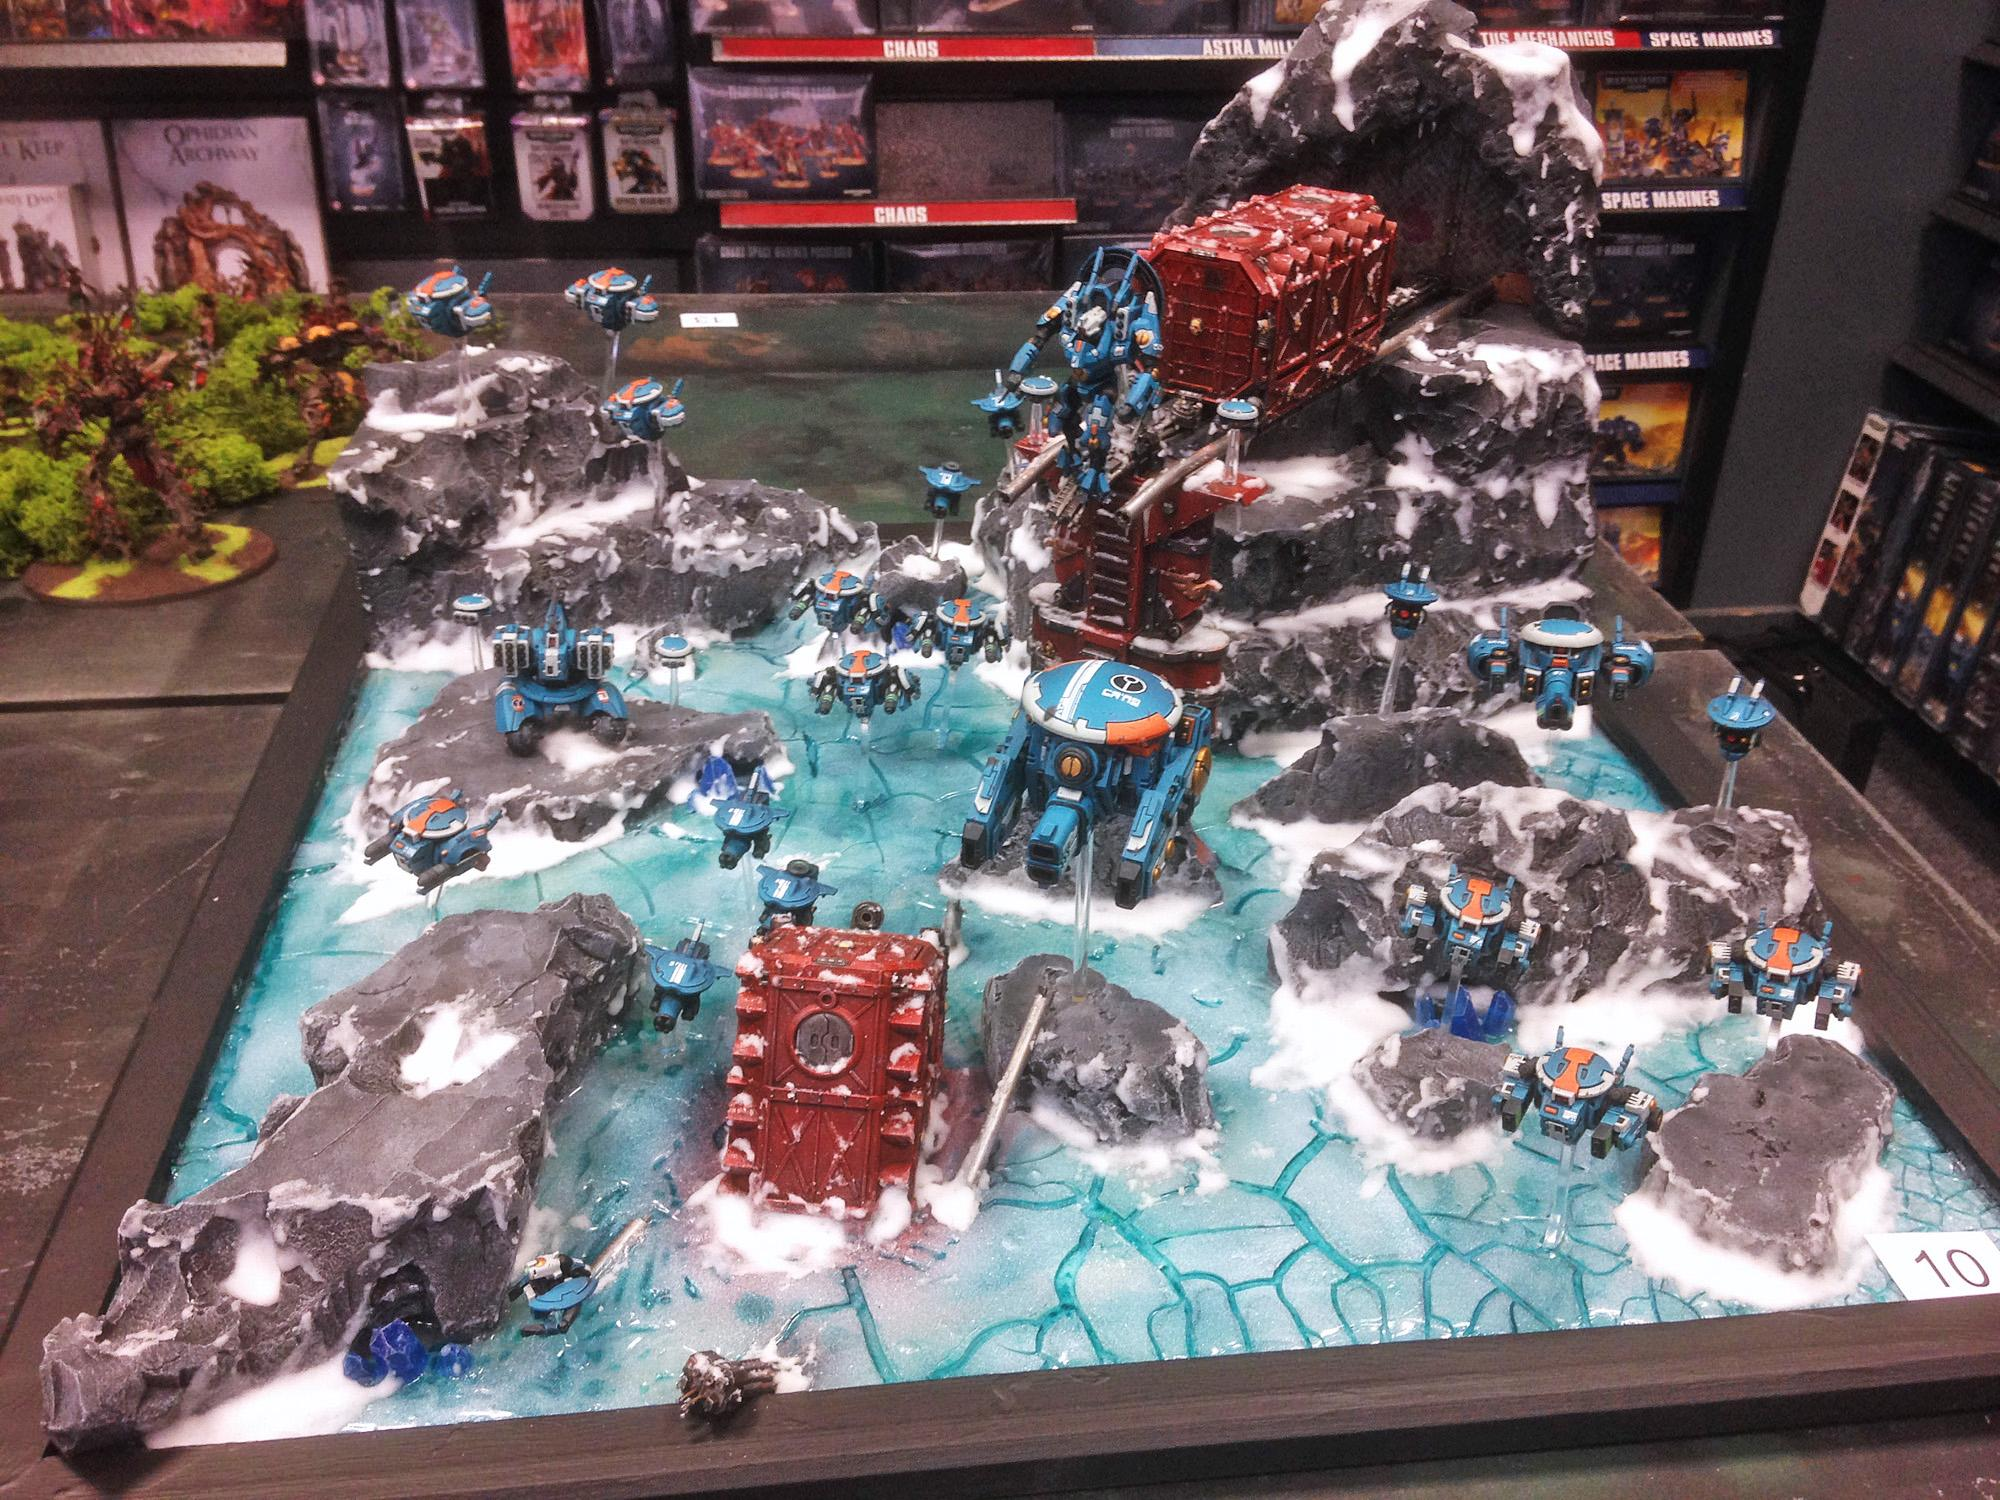 Armies On Parade, Containers, Conversion, Display Board, Drone, Drones, Frozen, Ice, Mountains, Railway, Snow, Tau, Tau Empire